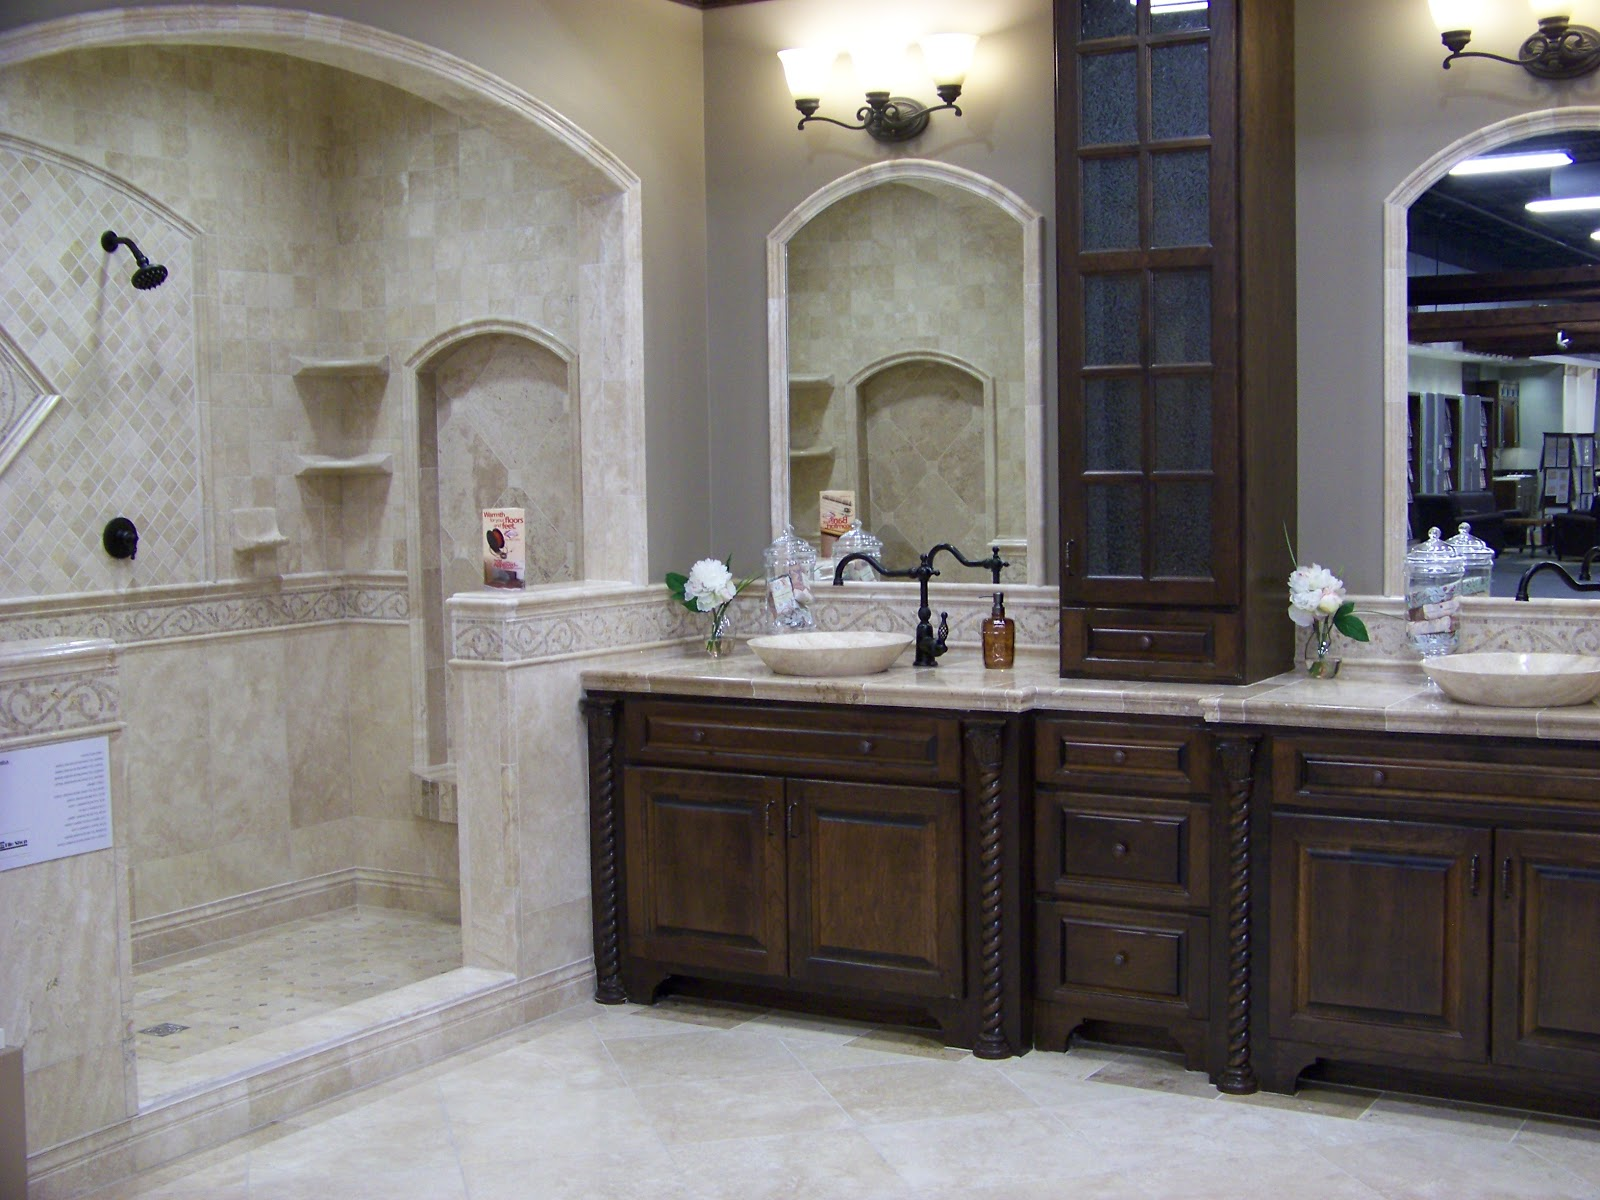 Home decor budgetista bathroom inspiration the tile shop Tile bathroom